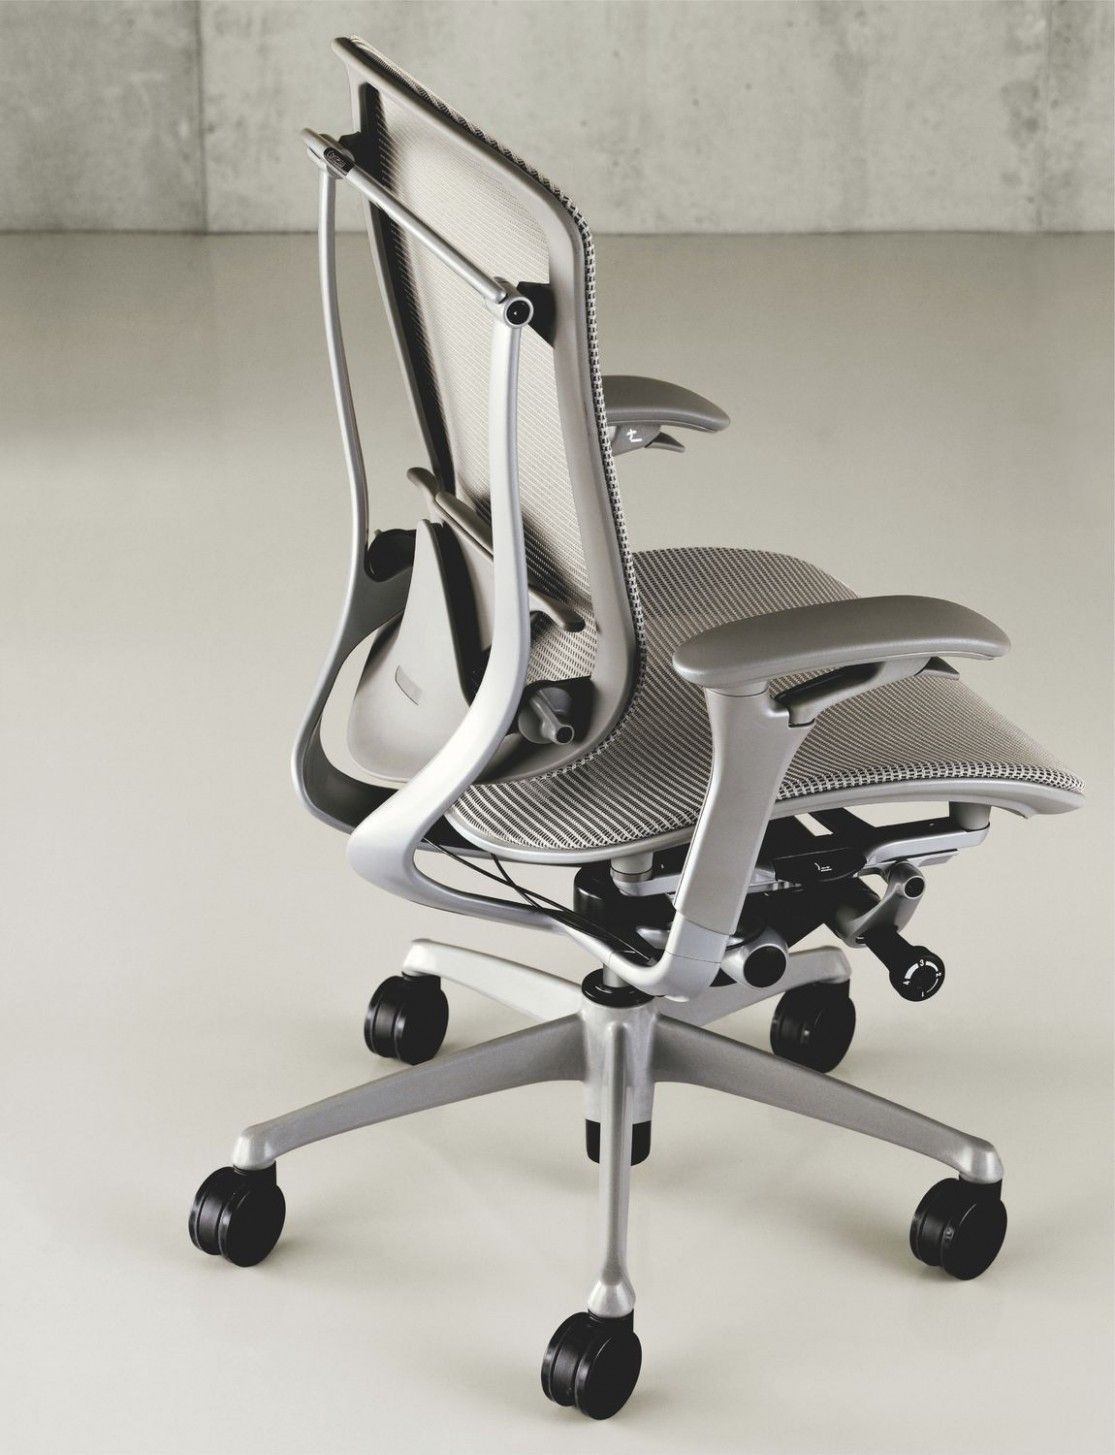 How To Get People To Like Teknion Contessa Chair Price Teknion Contessa Chair Price Ergonomic Office Chair Best Ergonomic Office Chair Office Chair Design